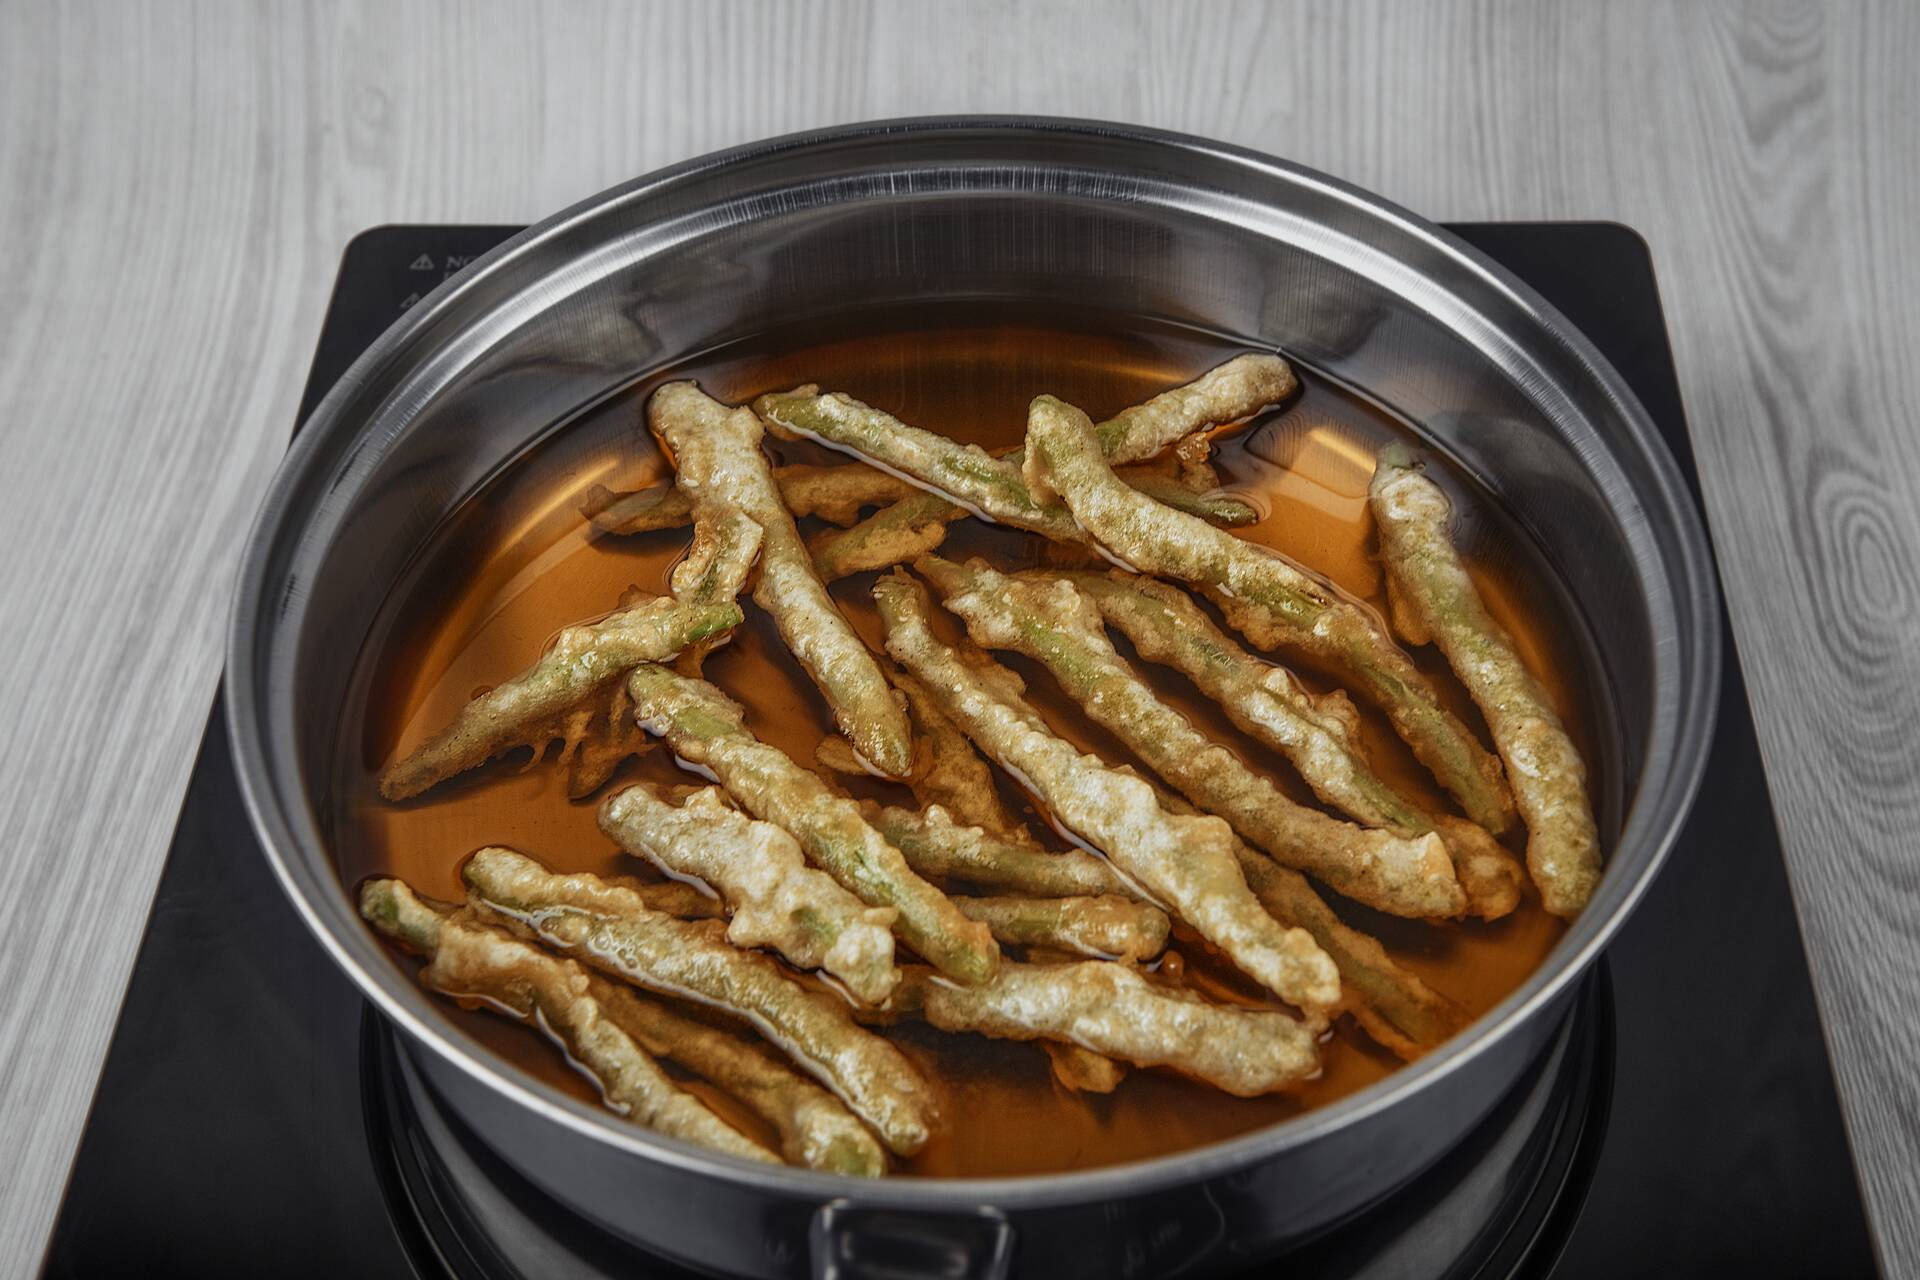 Fry the green beans